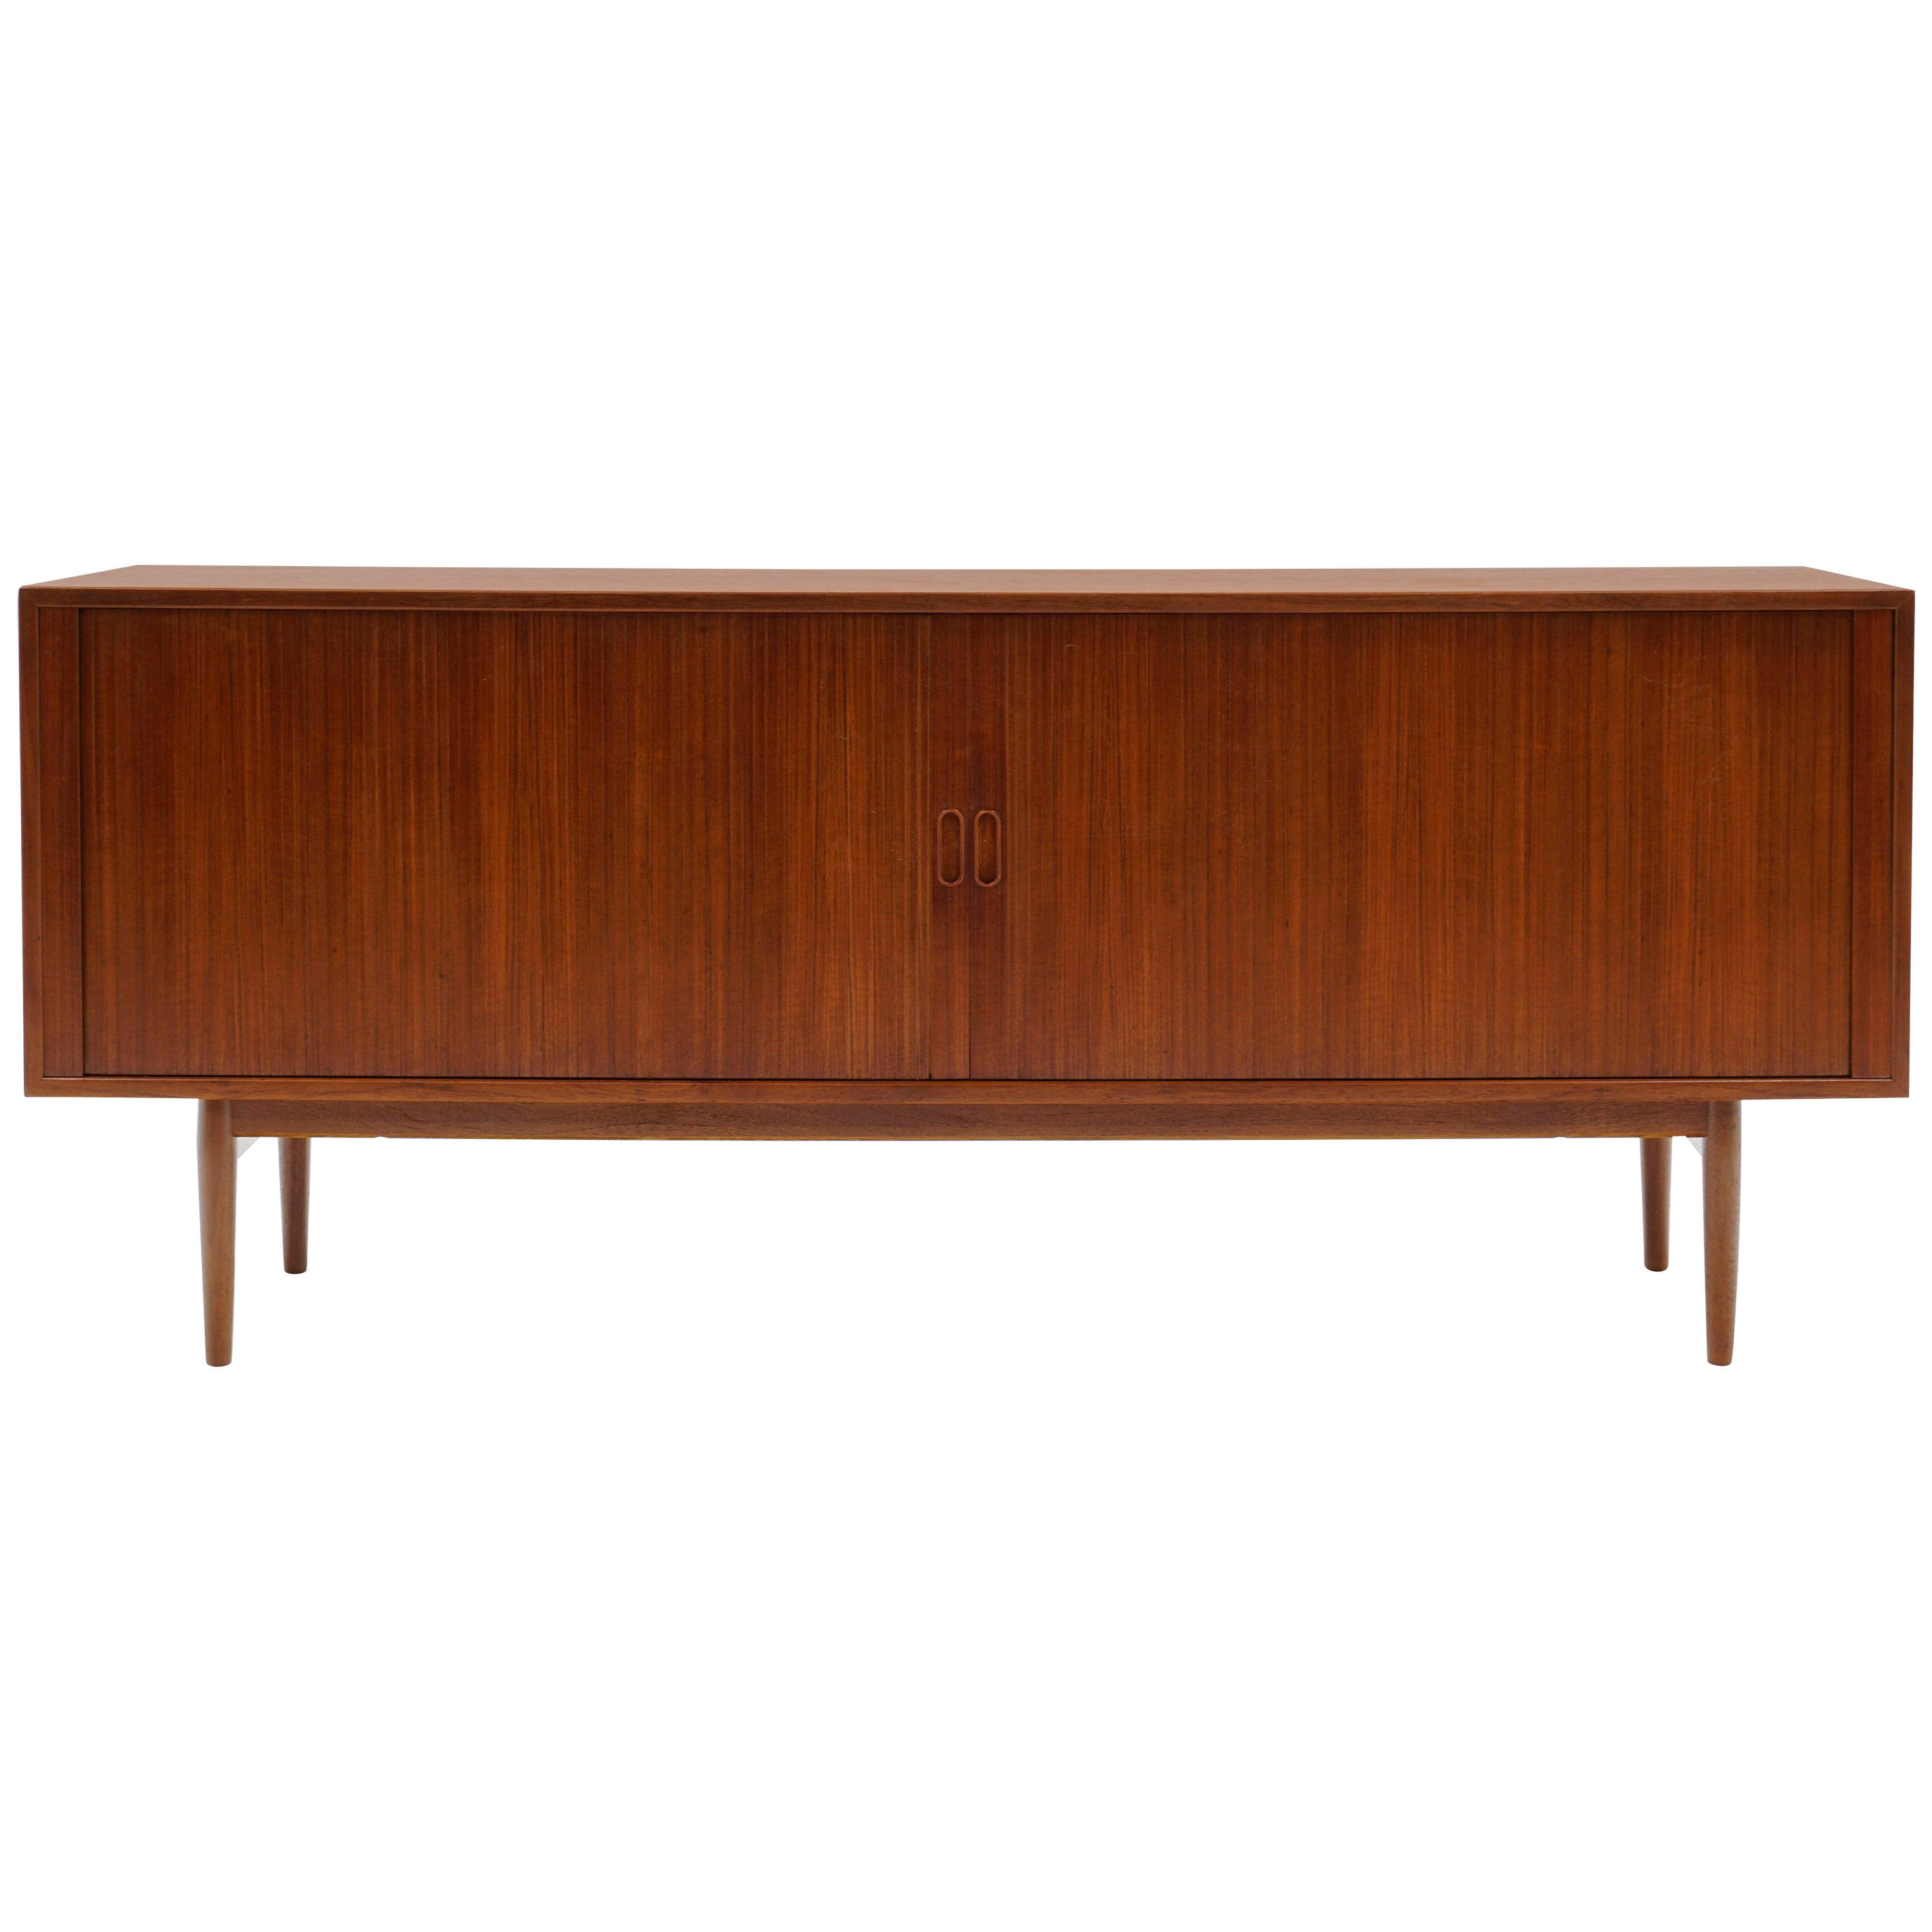 Rosewood Credenza by Arne Vodder, Disappearing Tambour Doors, ExpertlyRestored